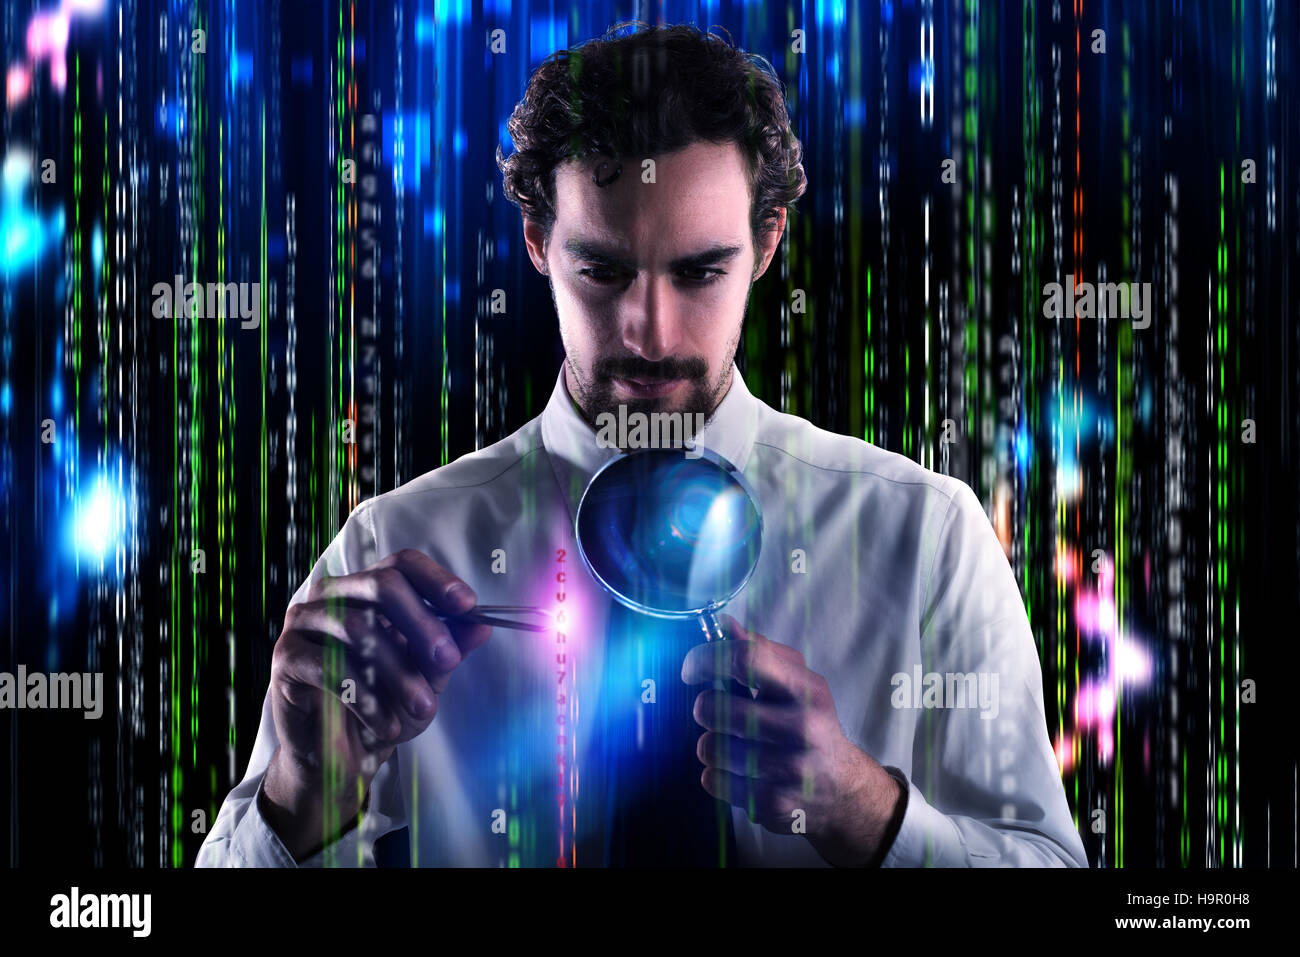 Examine and search a virus - Stock Image